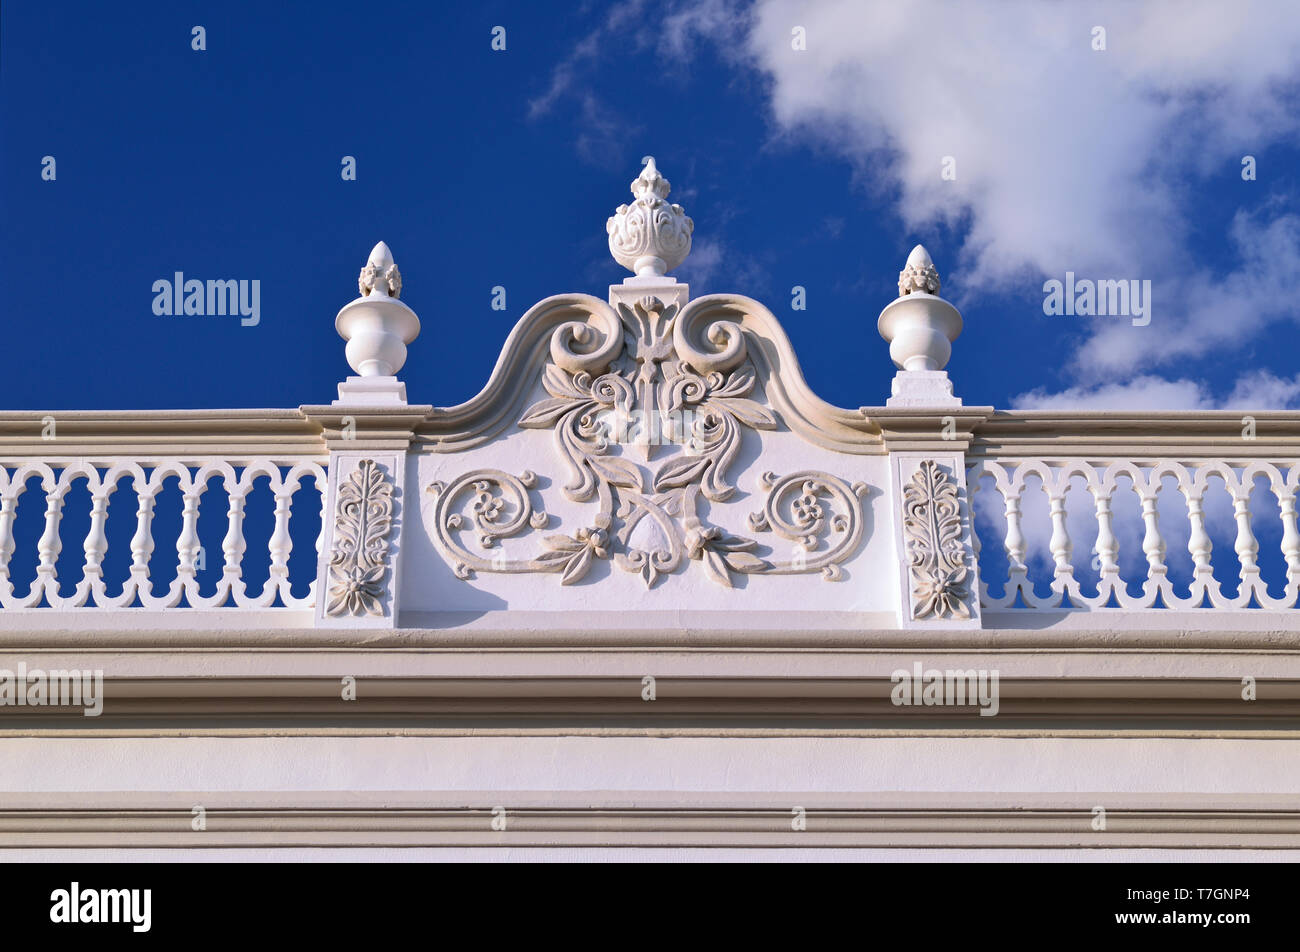 Detail of ornamented house facade - Stock Image